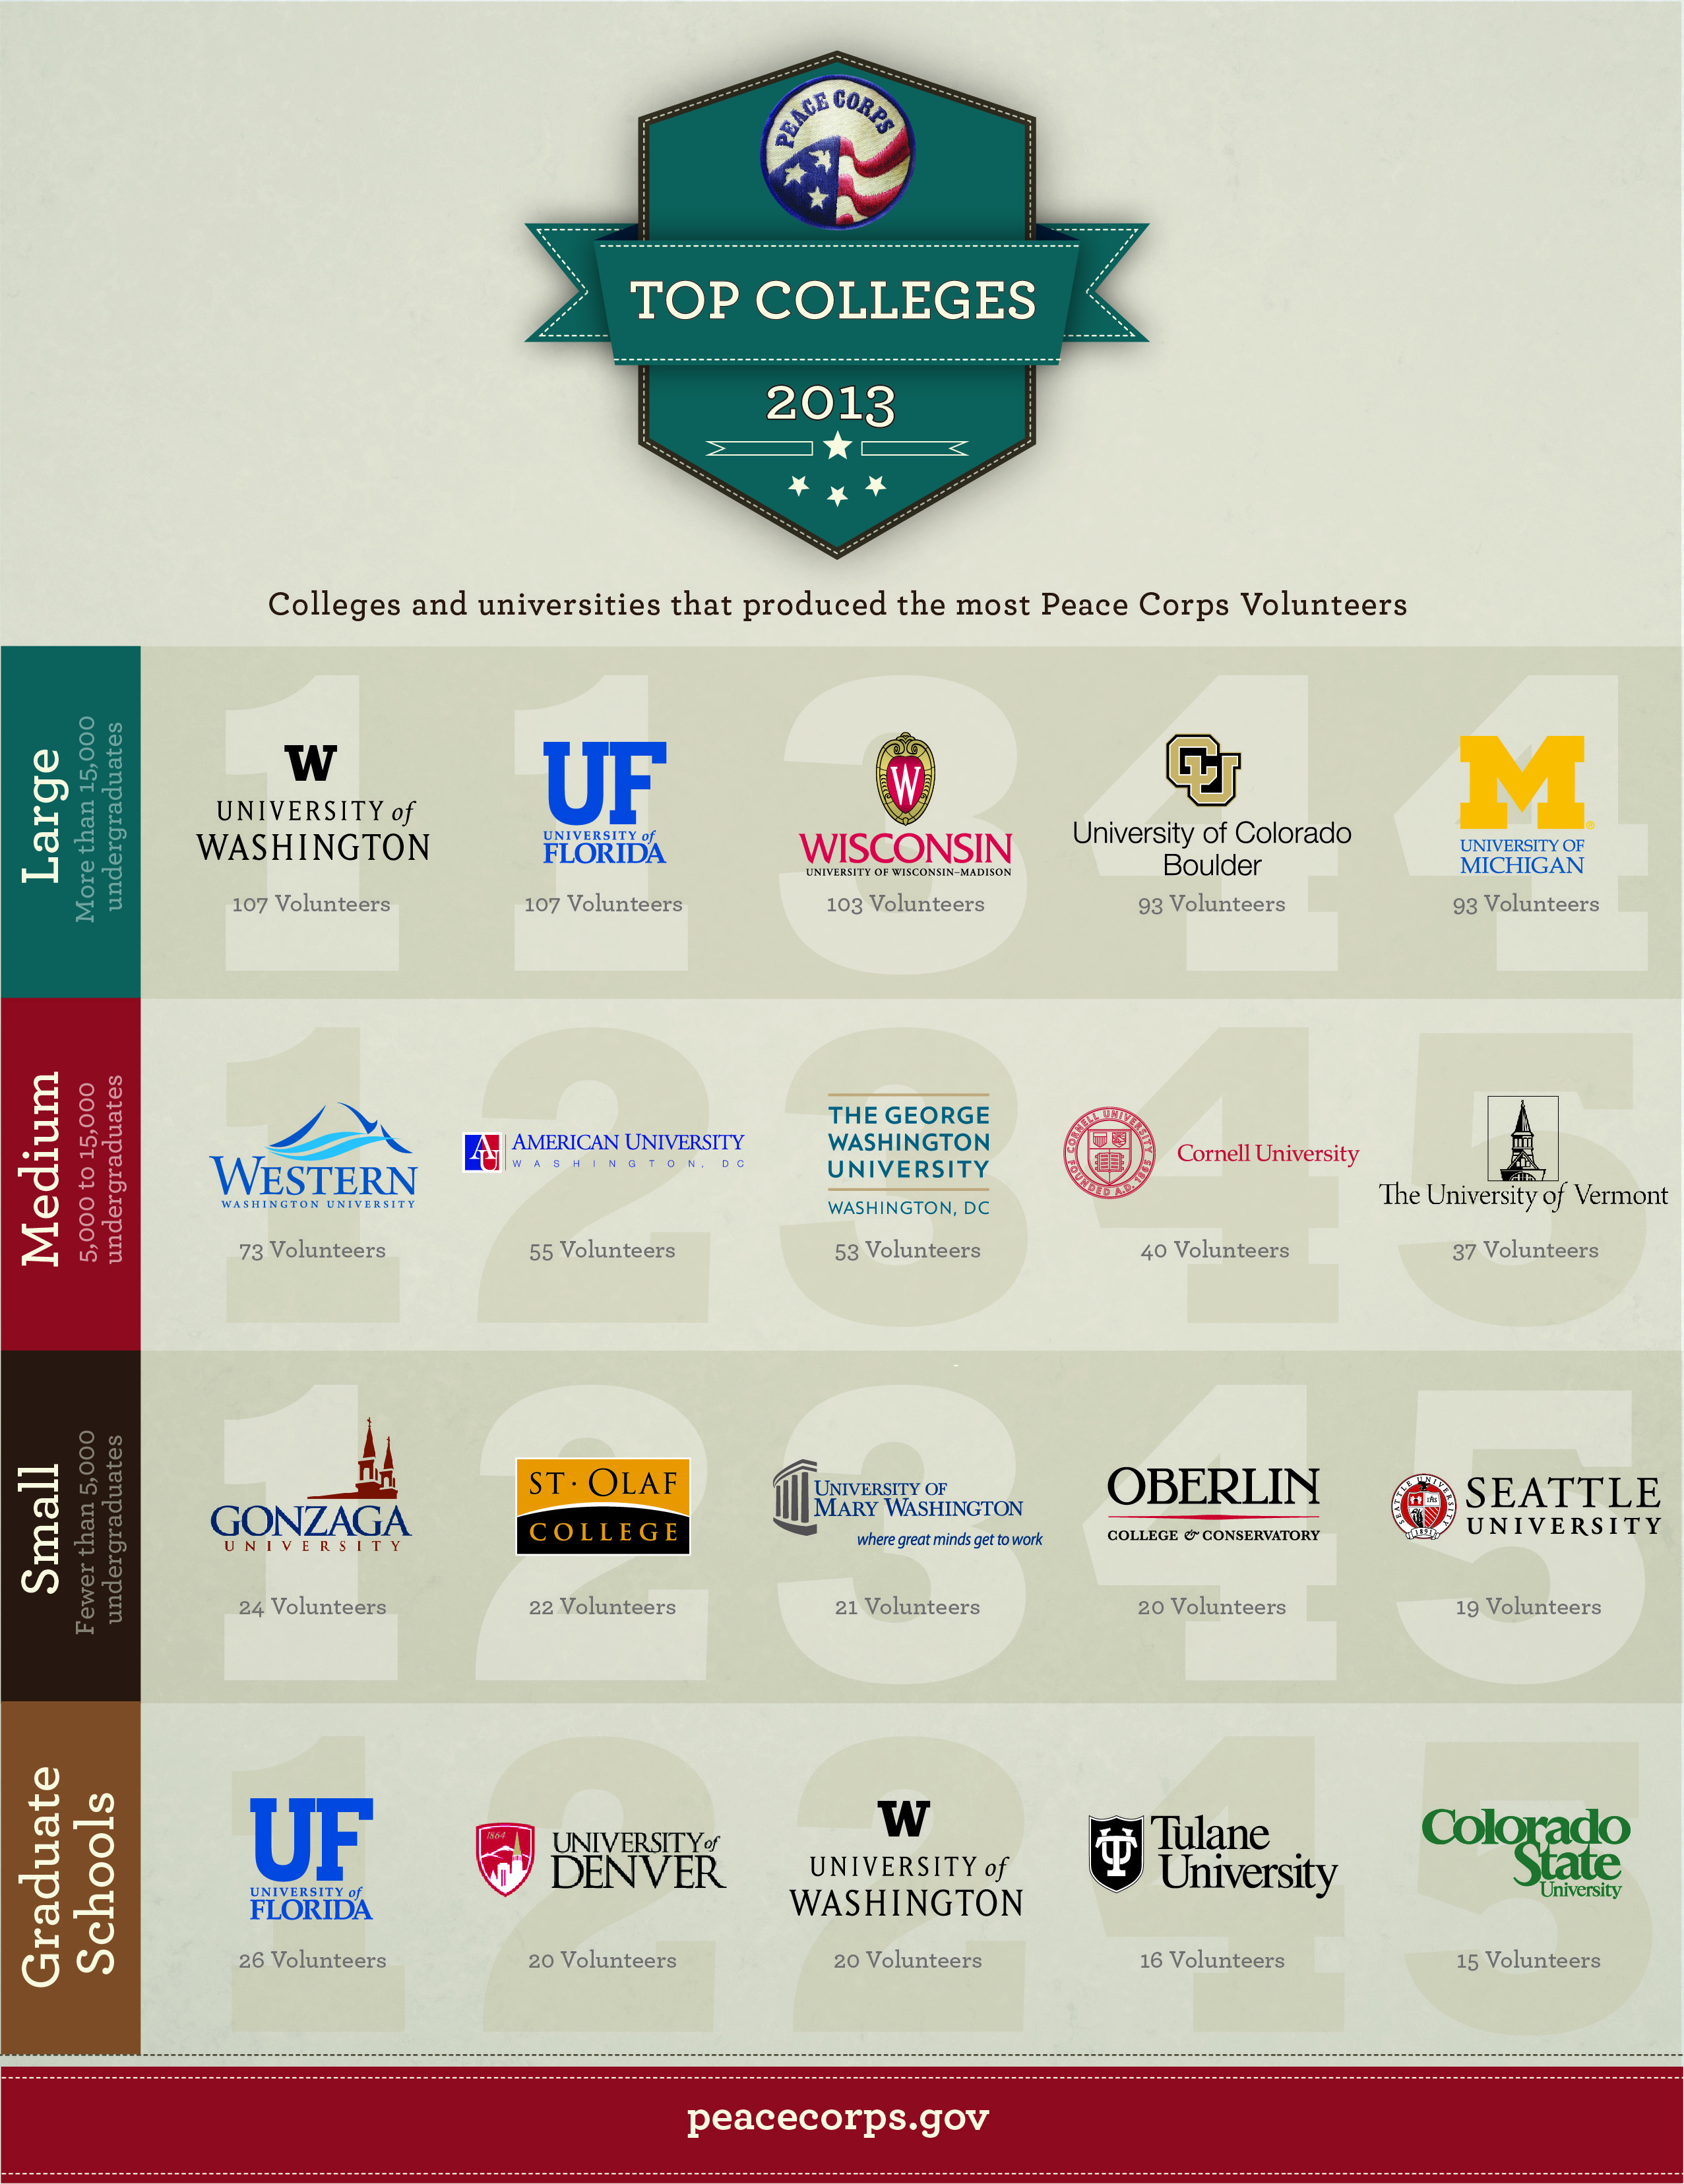 4 University Ranking Top Colleges